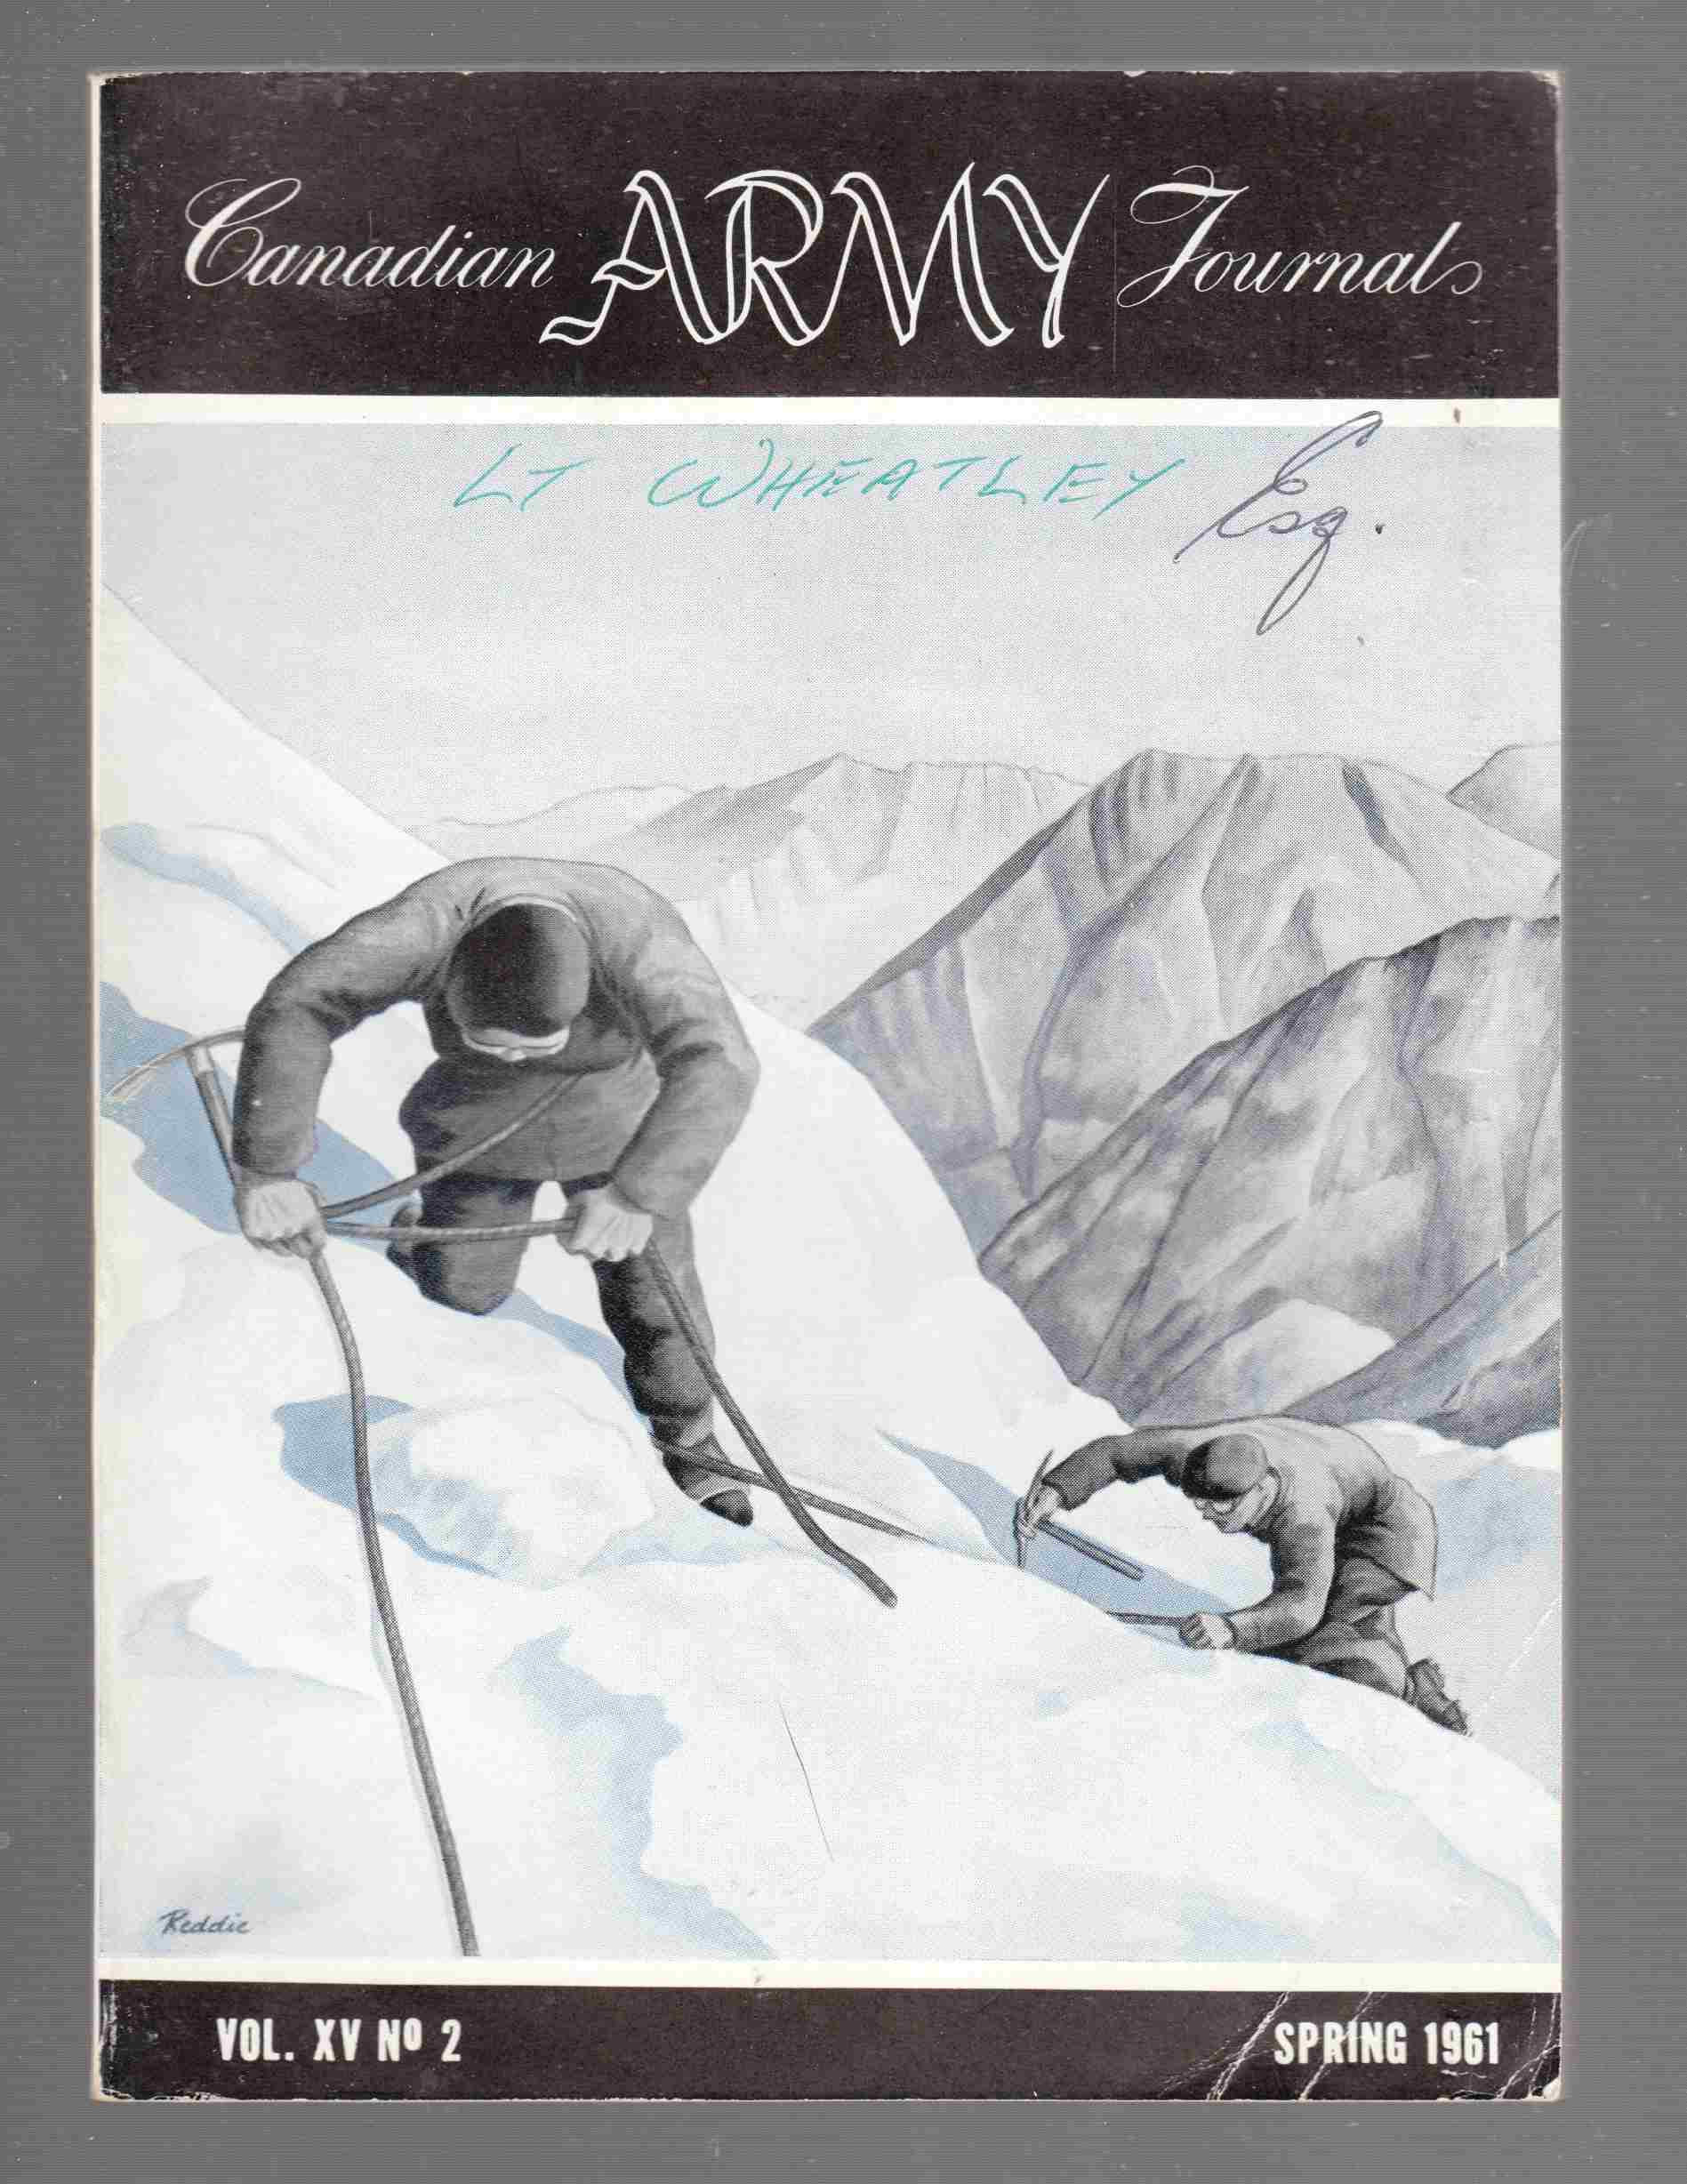 Image for The Canadian Army Journal Vol. XV No. 2 Spring 1961